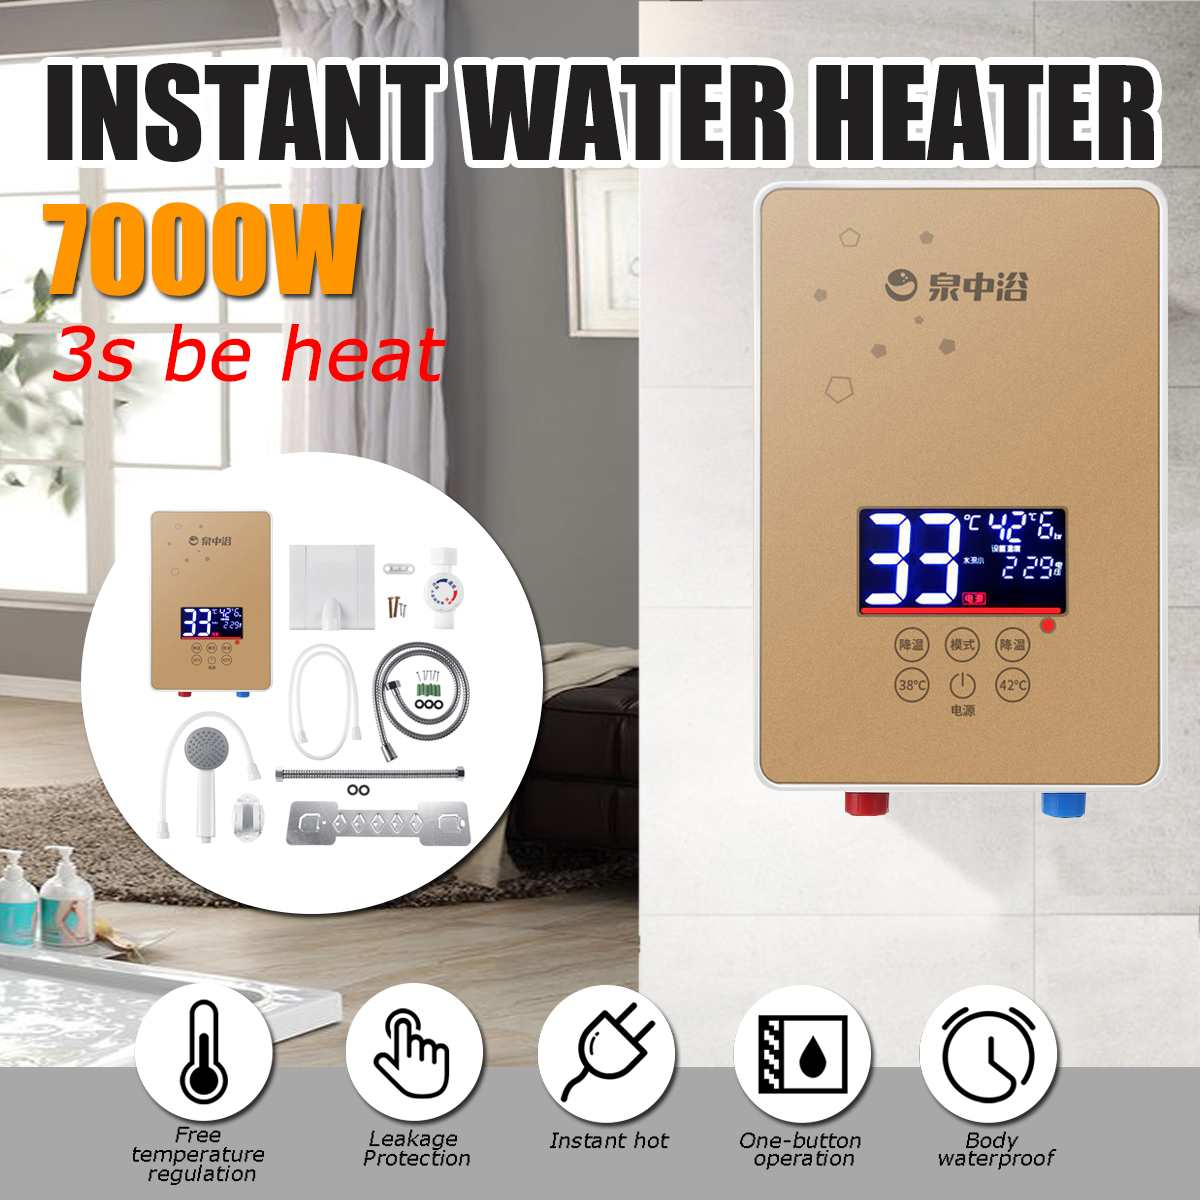 7000w-220v-electric-hot-water-heater-tankless-instant-boiler-bathroom-shower-set-thermostat-intelligent-automatically-heating